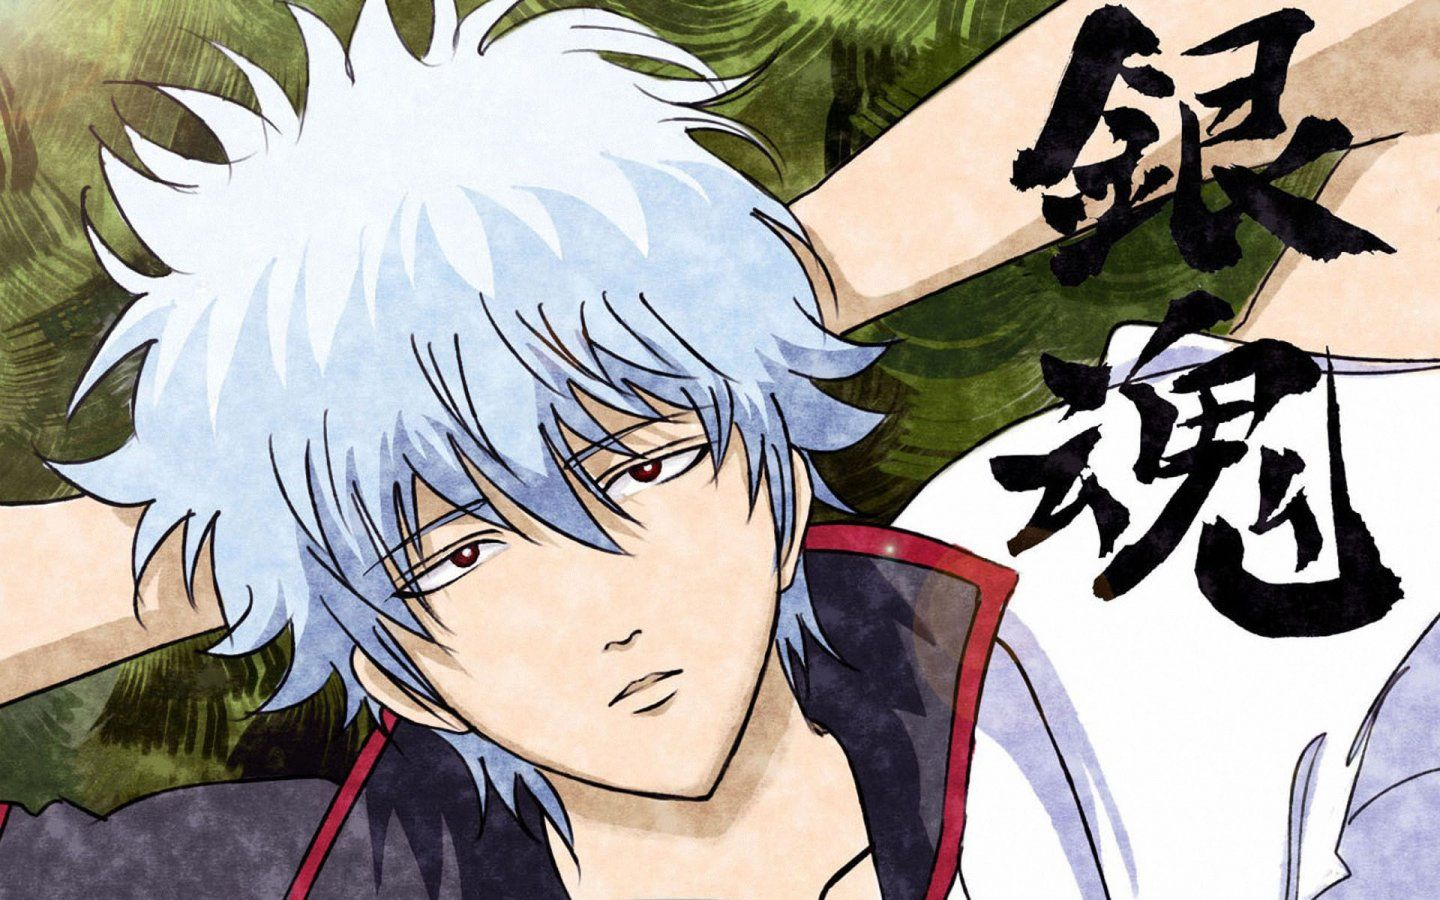 Can I Just Say Hes The King Of Troll And Badassery Gintoki From Gintama Jpg 1440x900